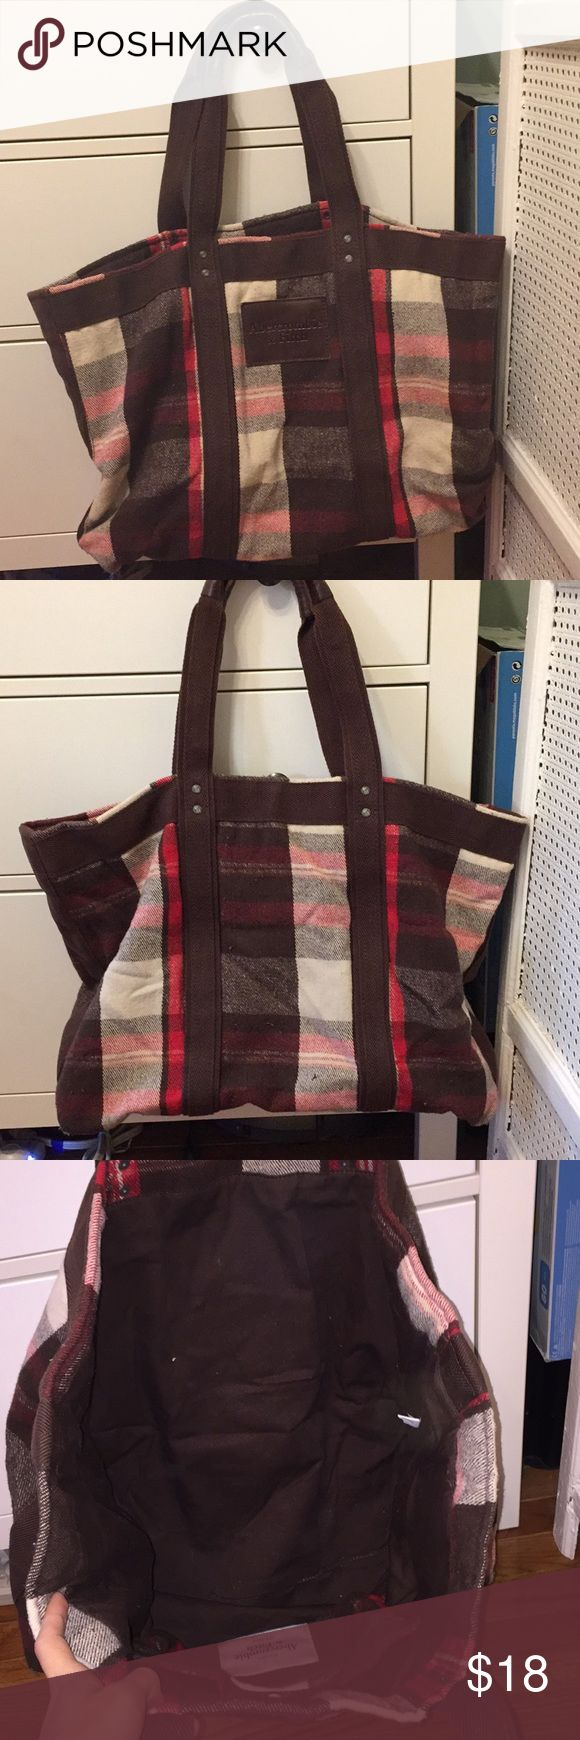 """A&F Plaid weekend bag tote Great weekend bag, especially for winter like a ski trip! Very specious inside. Thick, wool like material. 15"""" height and 22"""" width Abercrombie & Fitch Bags Travel Bags"""